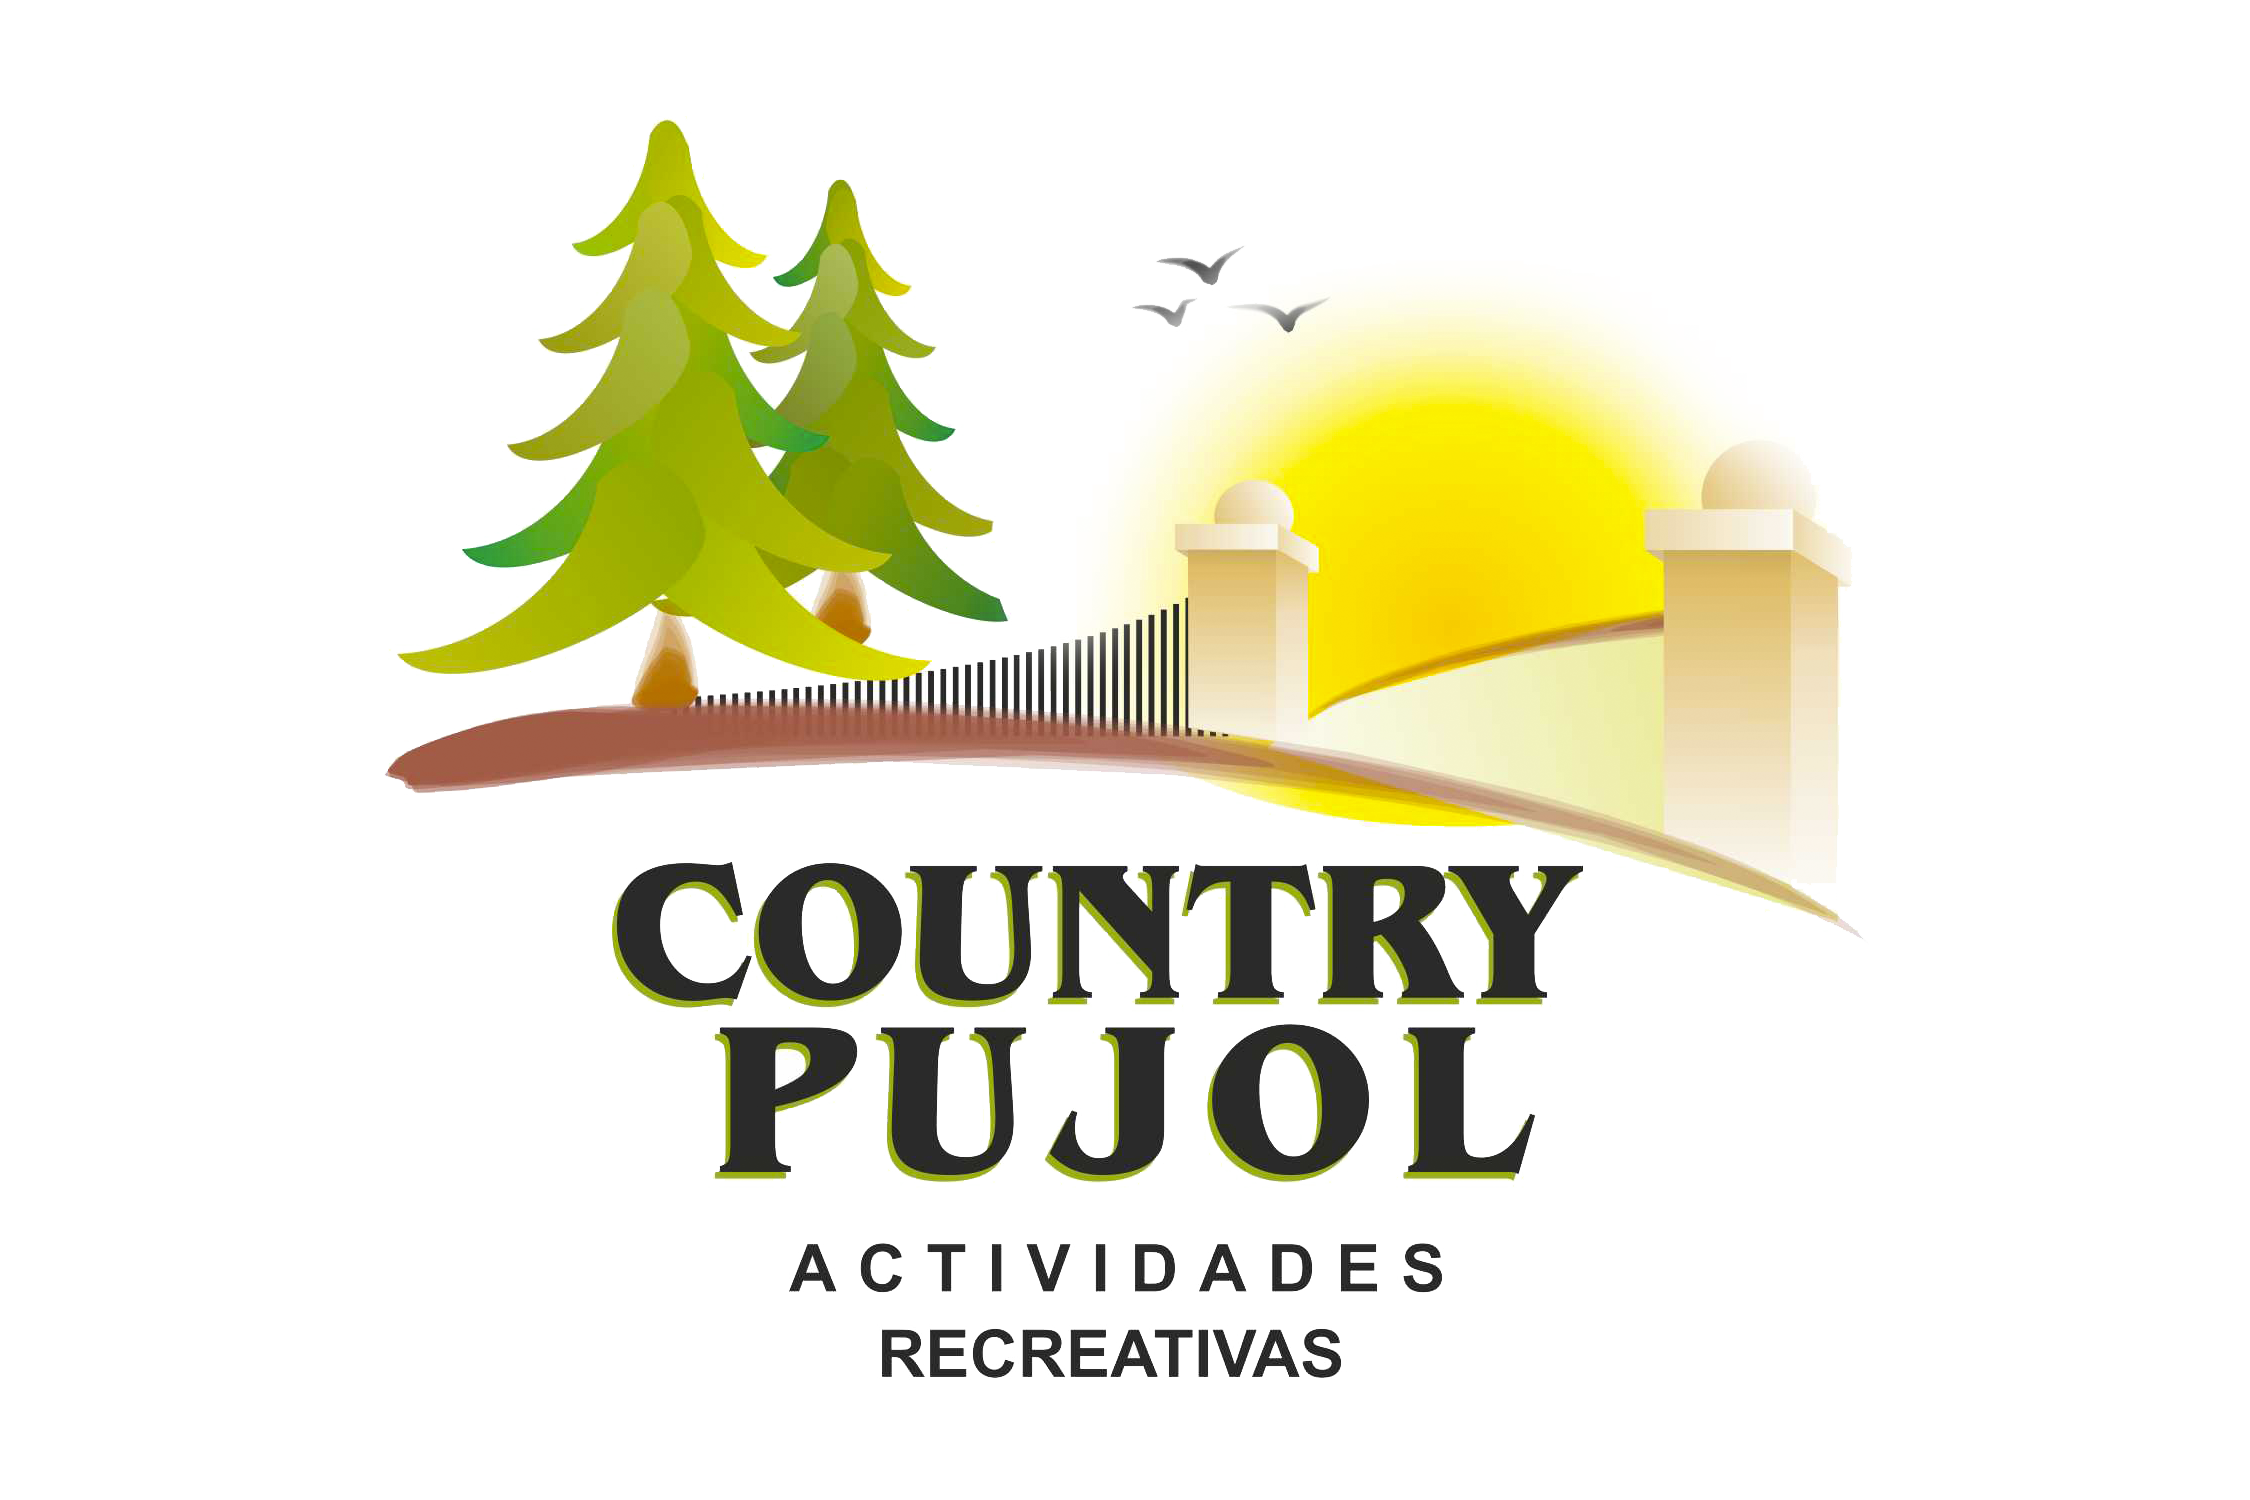 Country Pujol